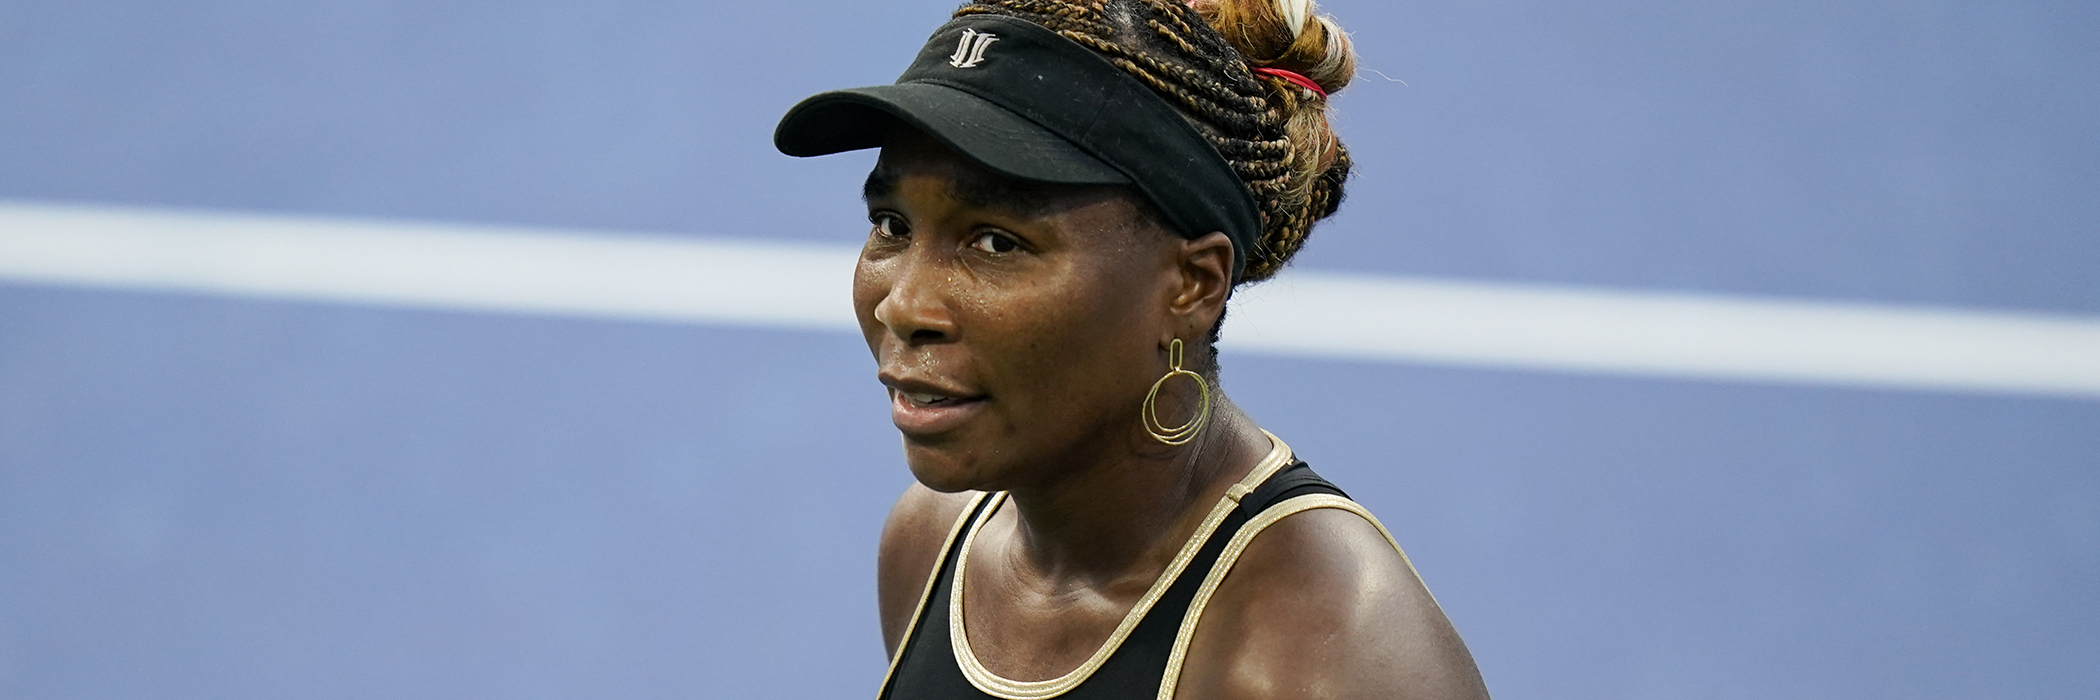 Venus Williams Wrote a Powerful Essay Calling to End the Gender Pay Gap